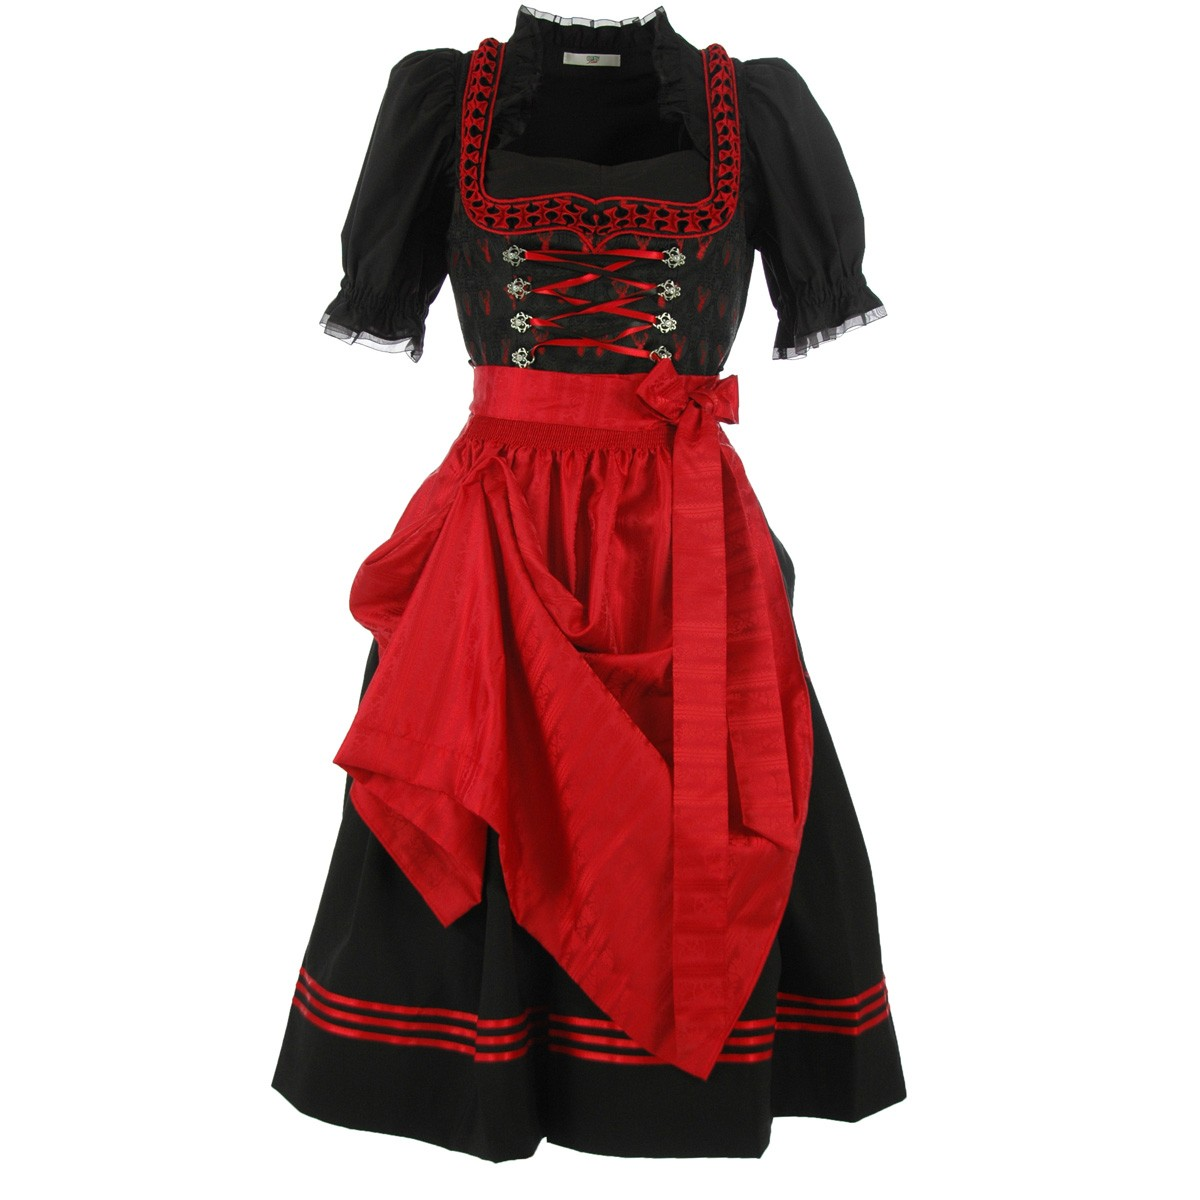 midi dirndl theresia in schwarz und rot von turi. Black Bedroom Furniture Sets. Home Design Ideas